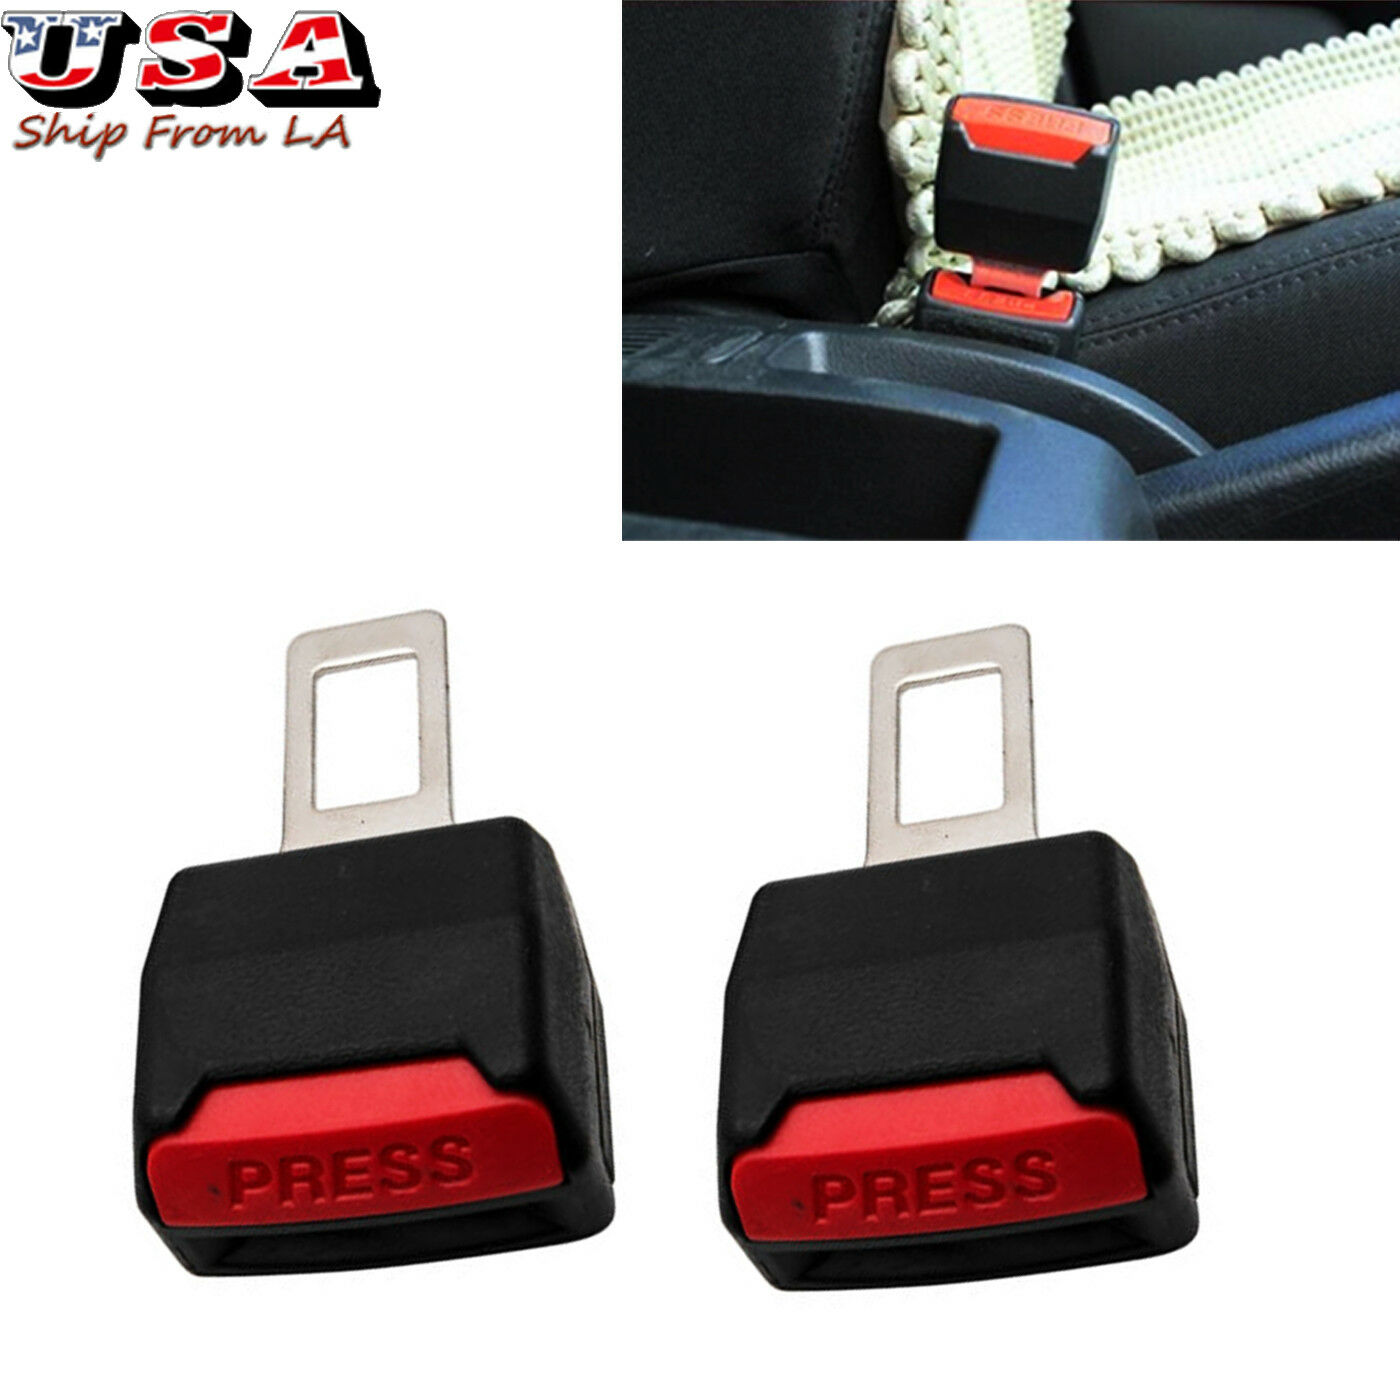 2X Universal Safety Seat Belt Buckle Clip Extender Car Safety Alarm Stopper New